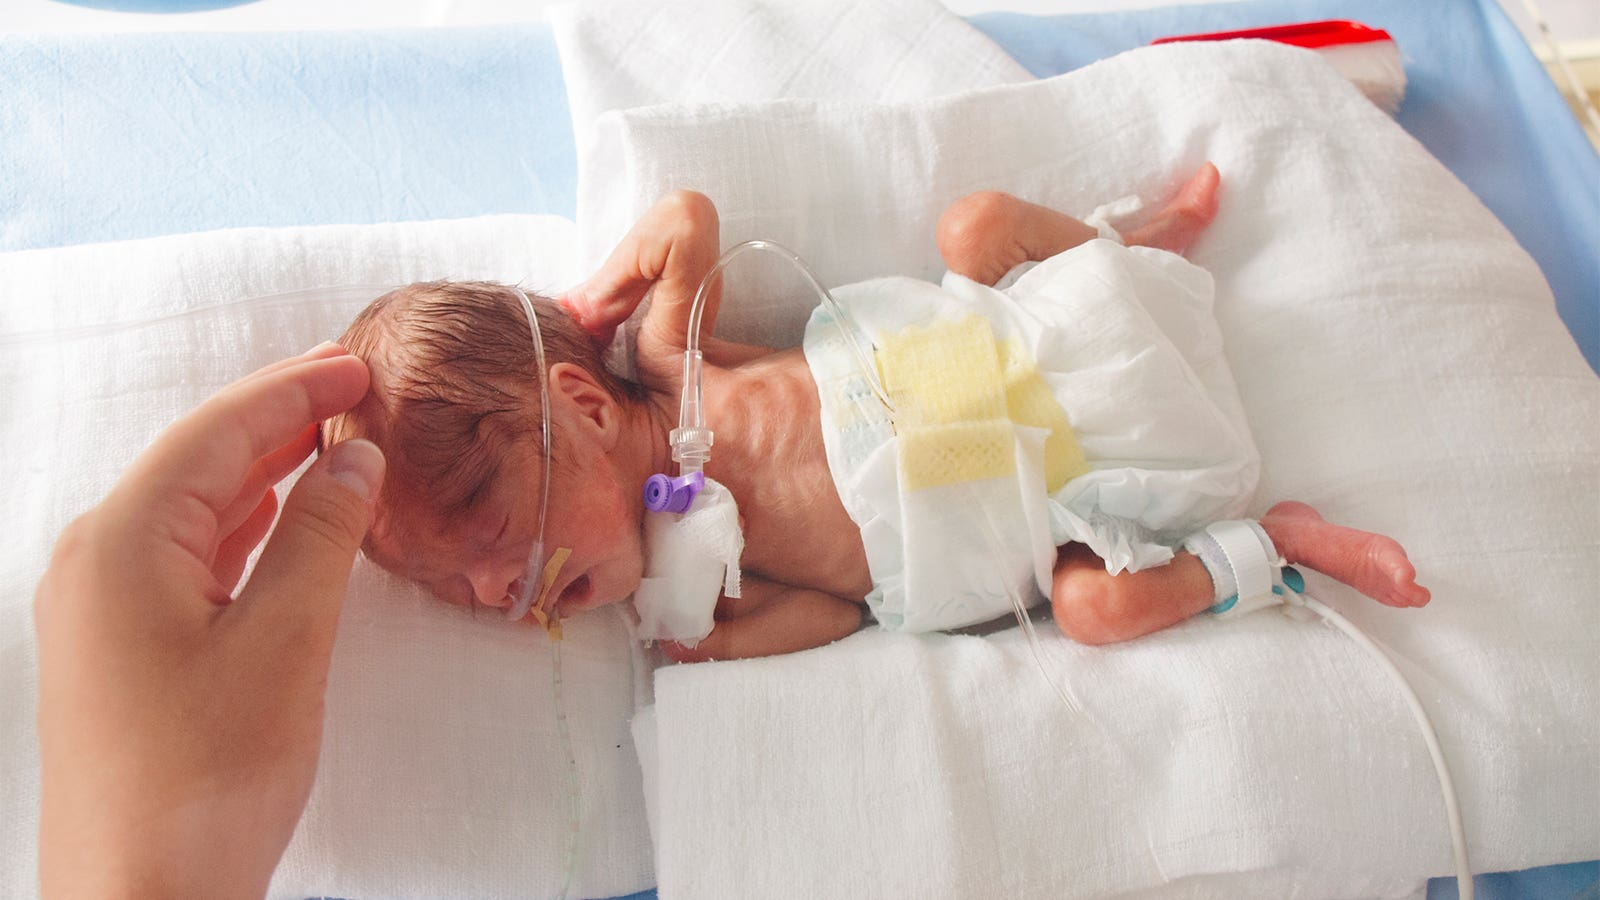 A woman caresses the head of a preterm infant in the neonatal ICU.